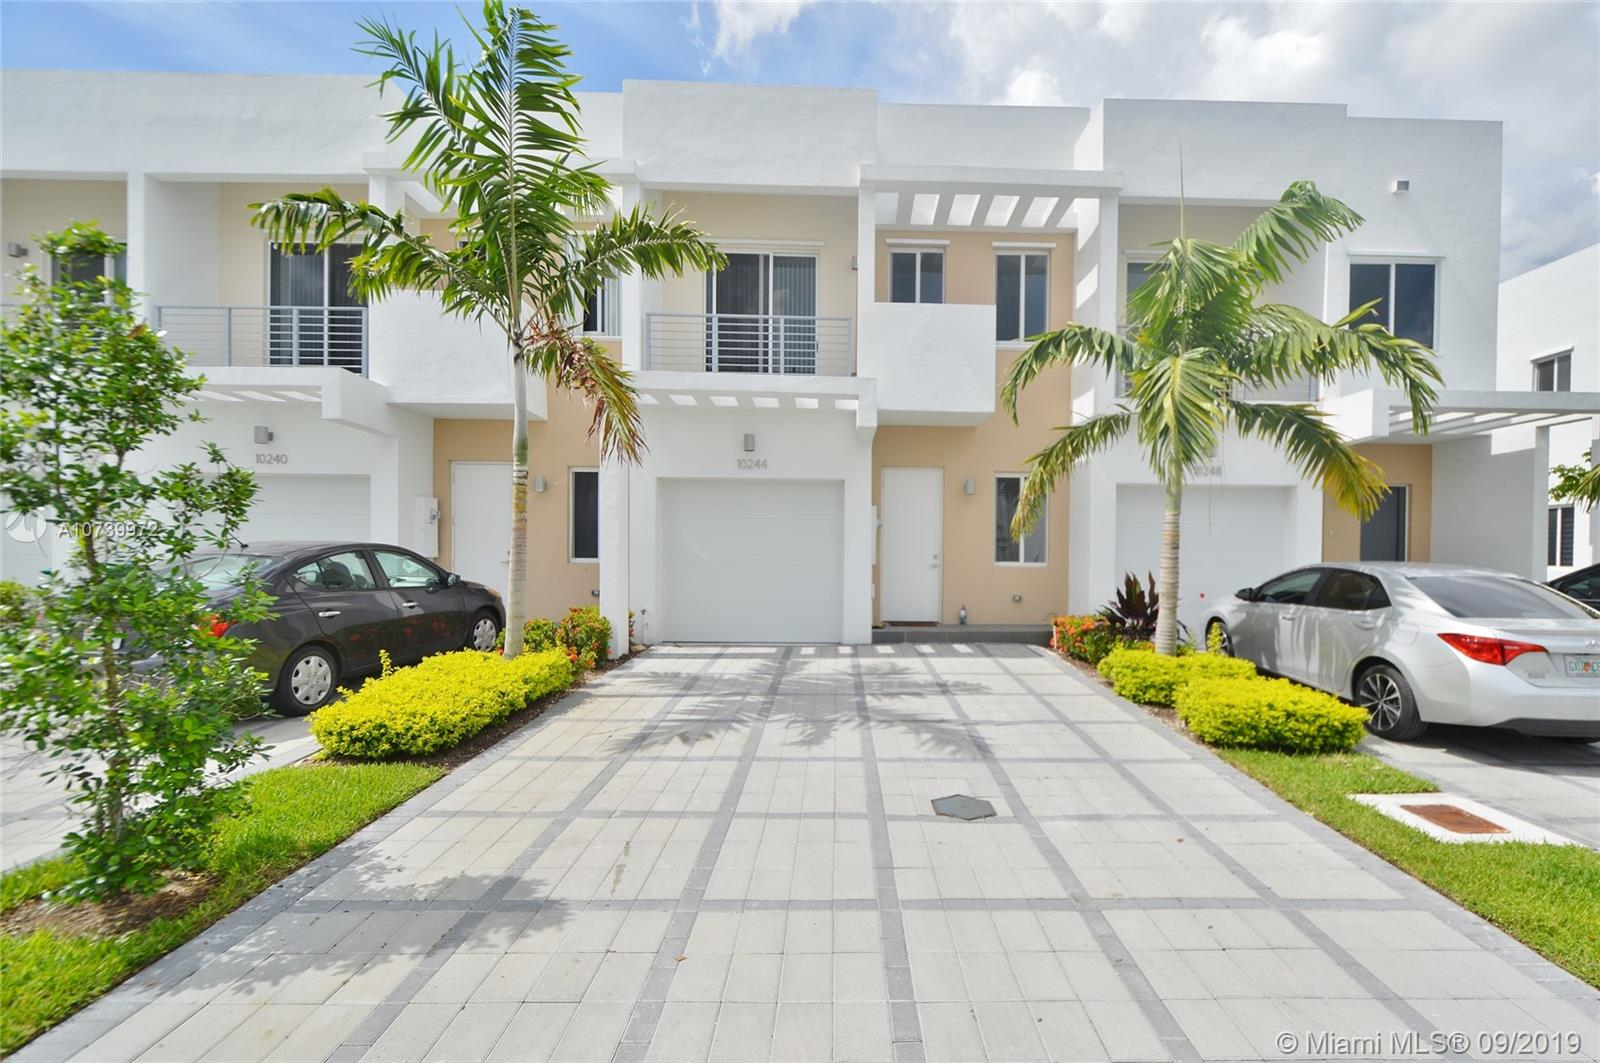 10244 NW 71st Ter, 10244 - Doral, Florida